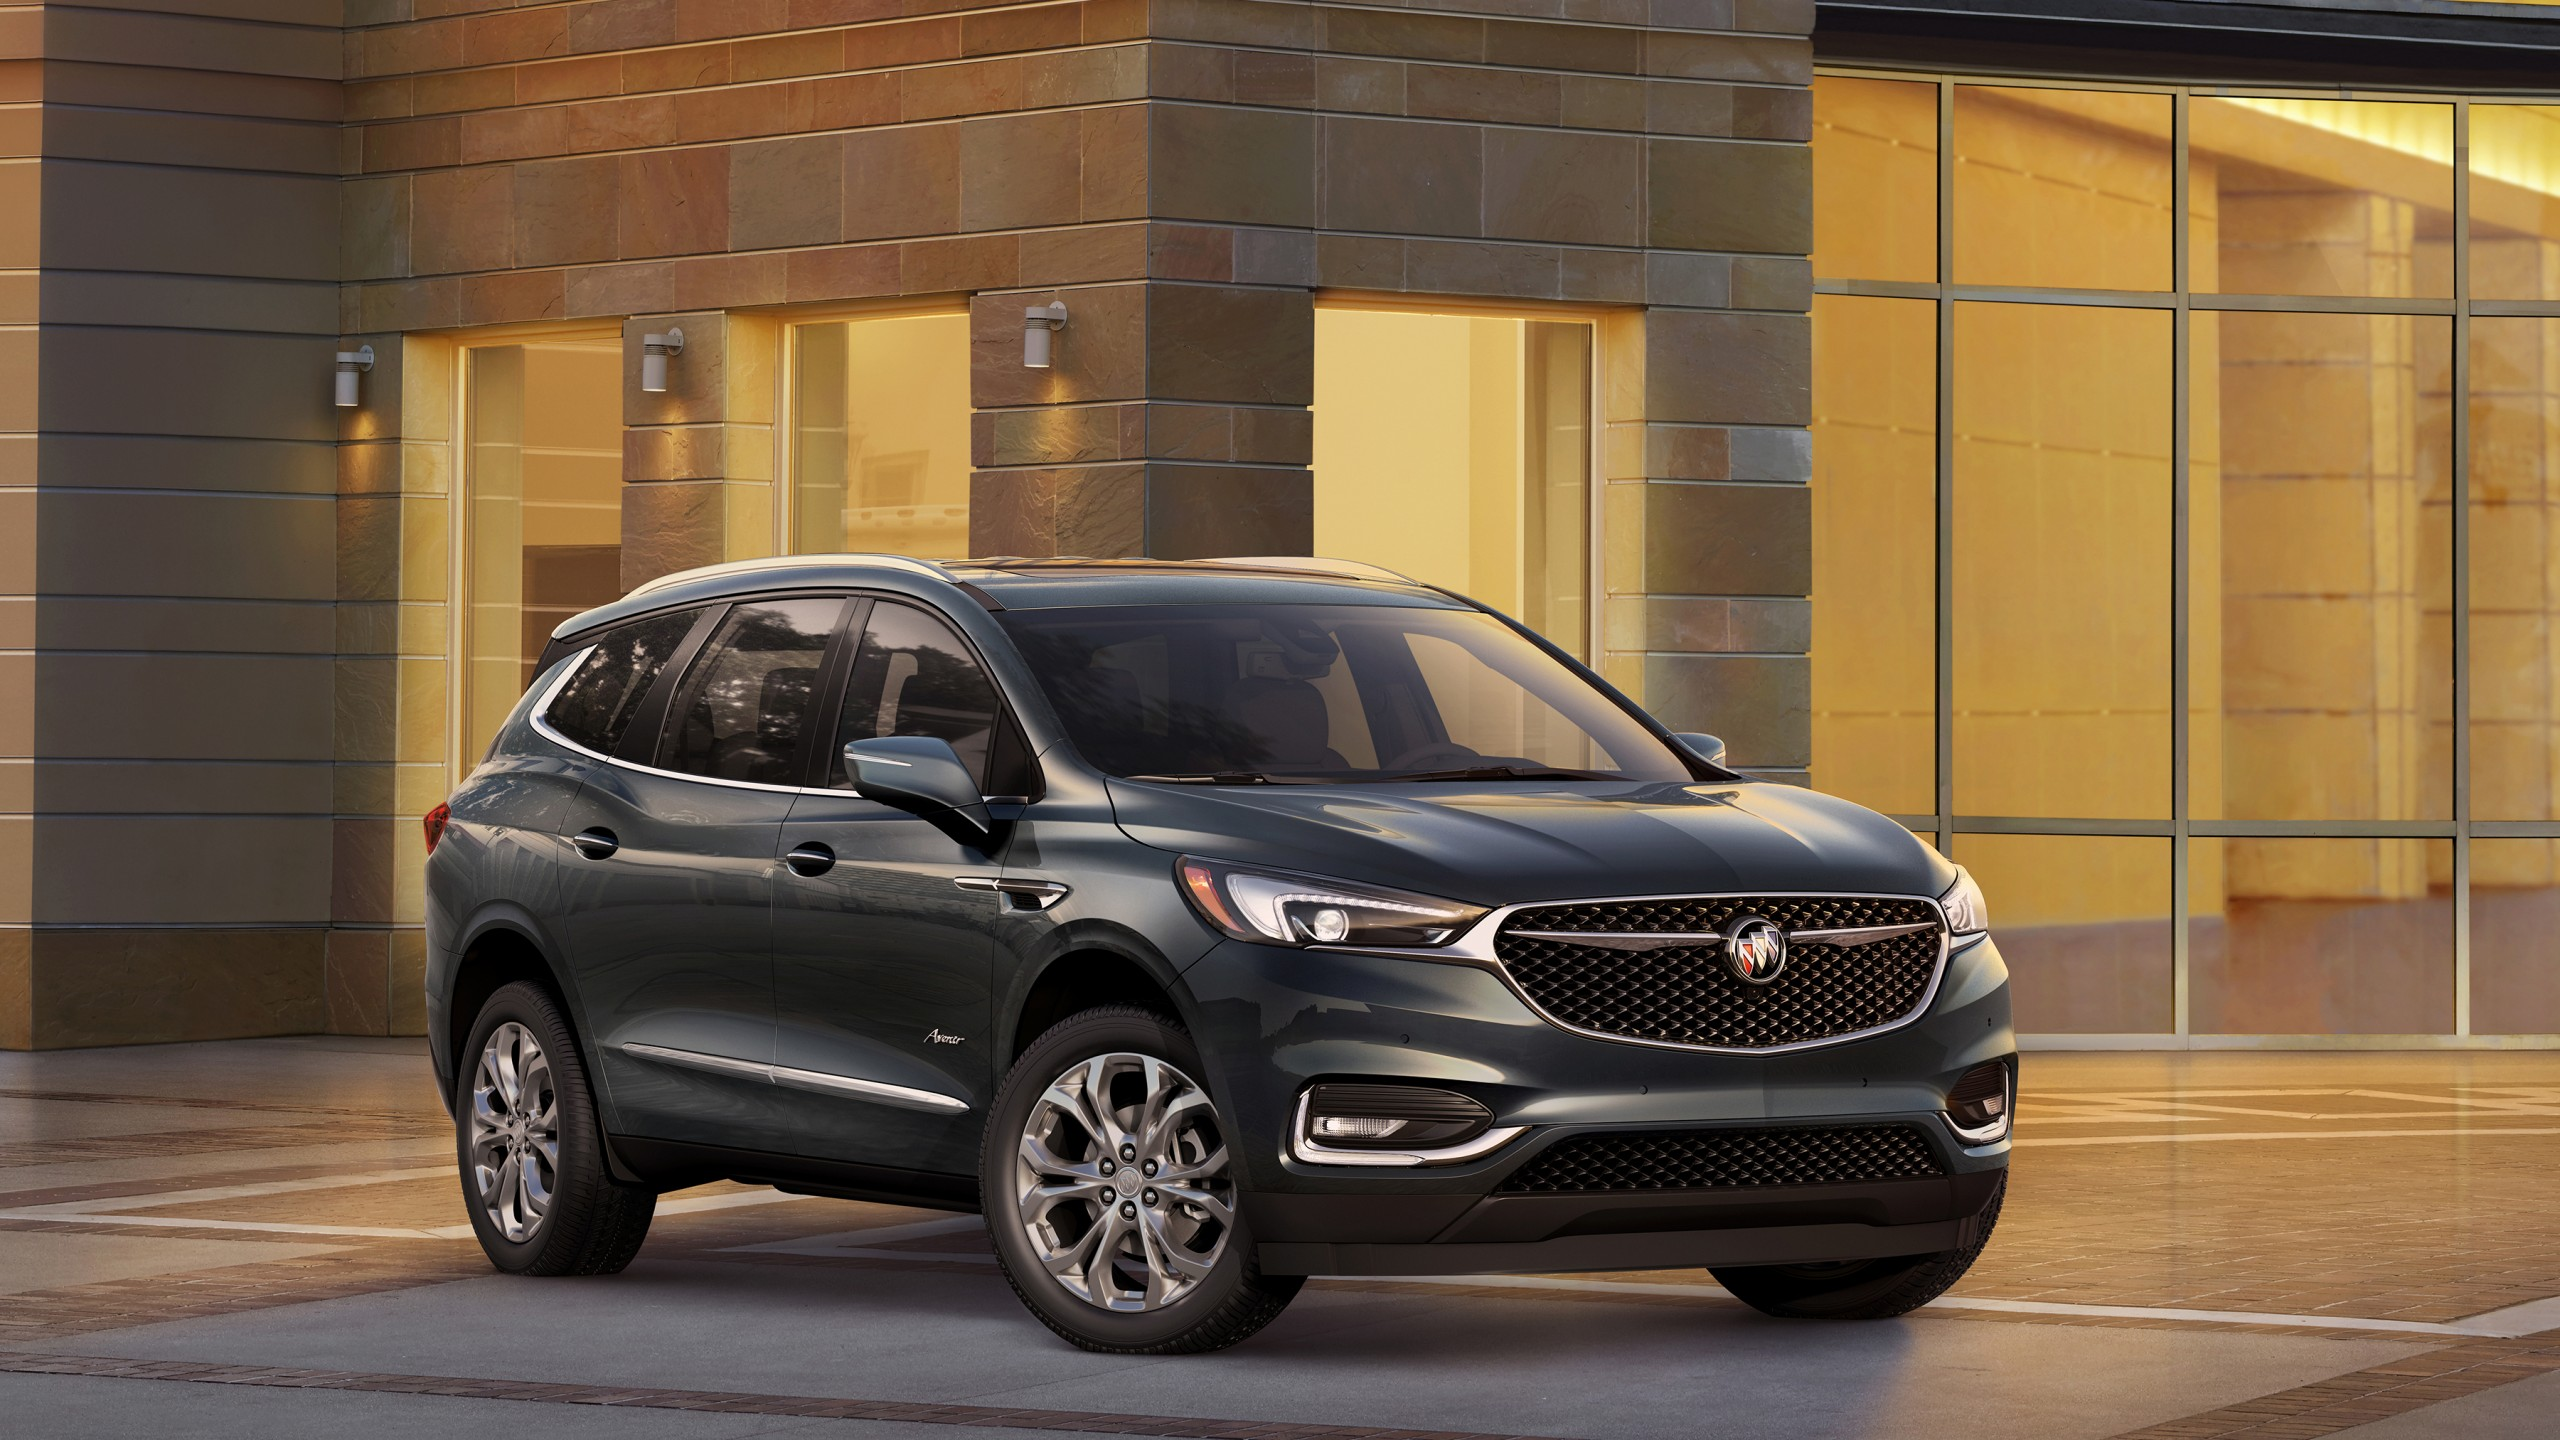 wallpaper buick enclave  crossover  2017 new york auto show  cars  u0026 bikes  13355